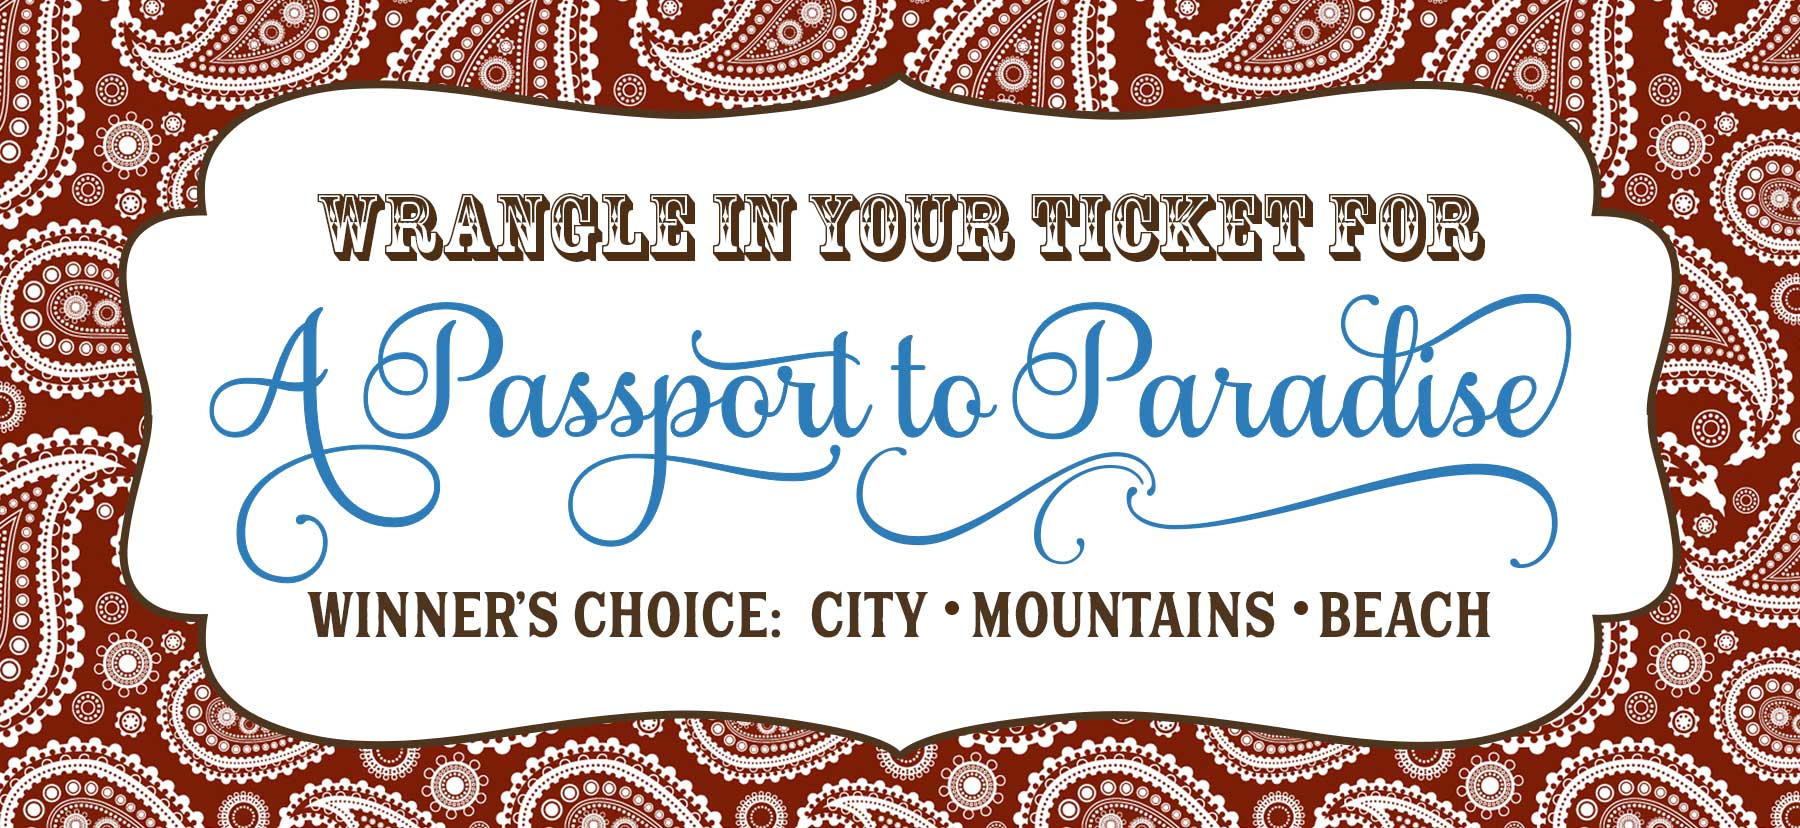 Blue Jeans Ball Passport to Paradise Raffle